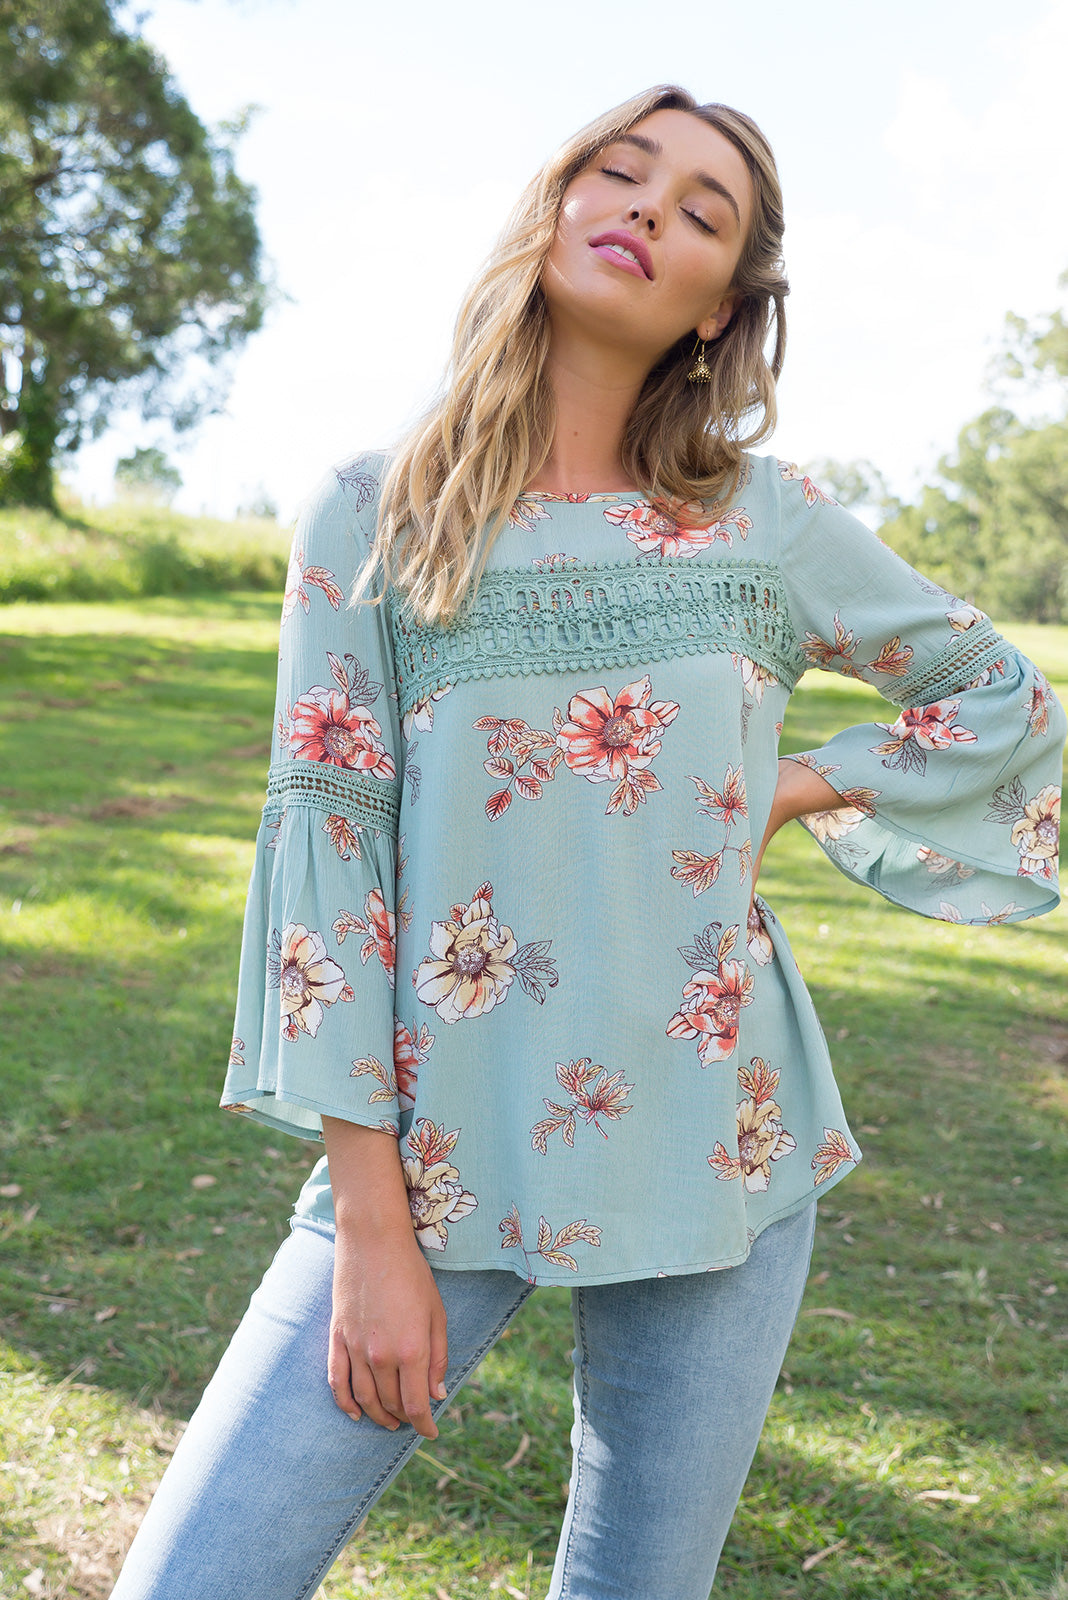 Savannah Top in Sage Green woven rayon with a floral print the top has a frill sleeve and beautiful decorative lace on the sleeve and across the front